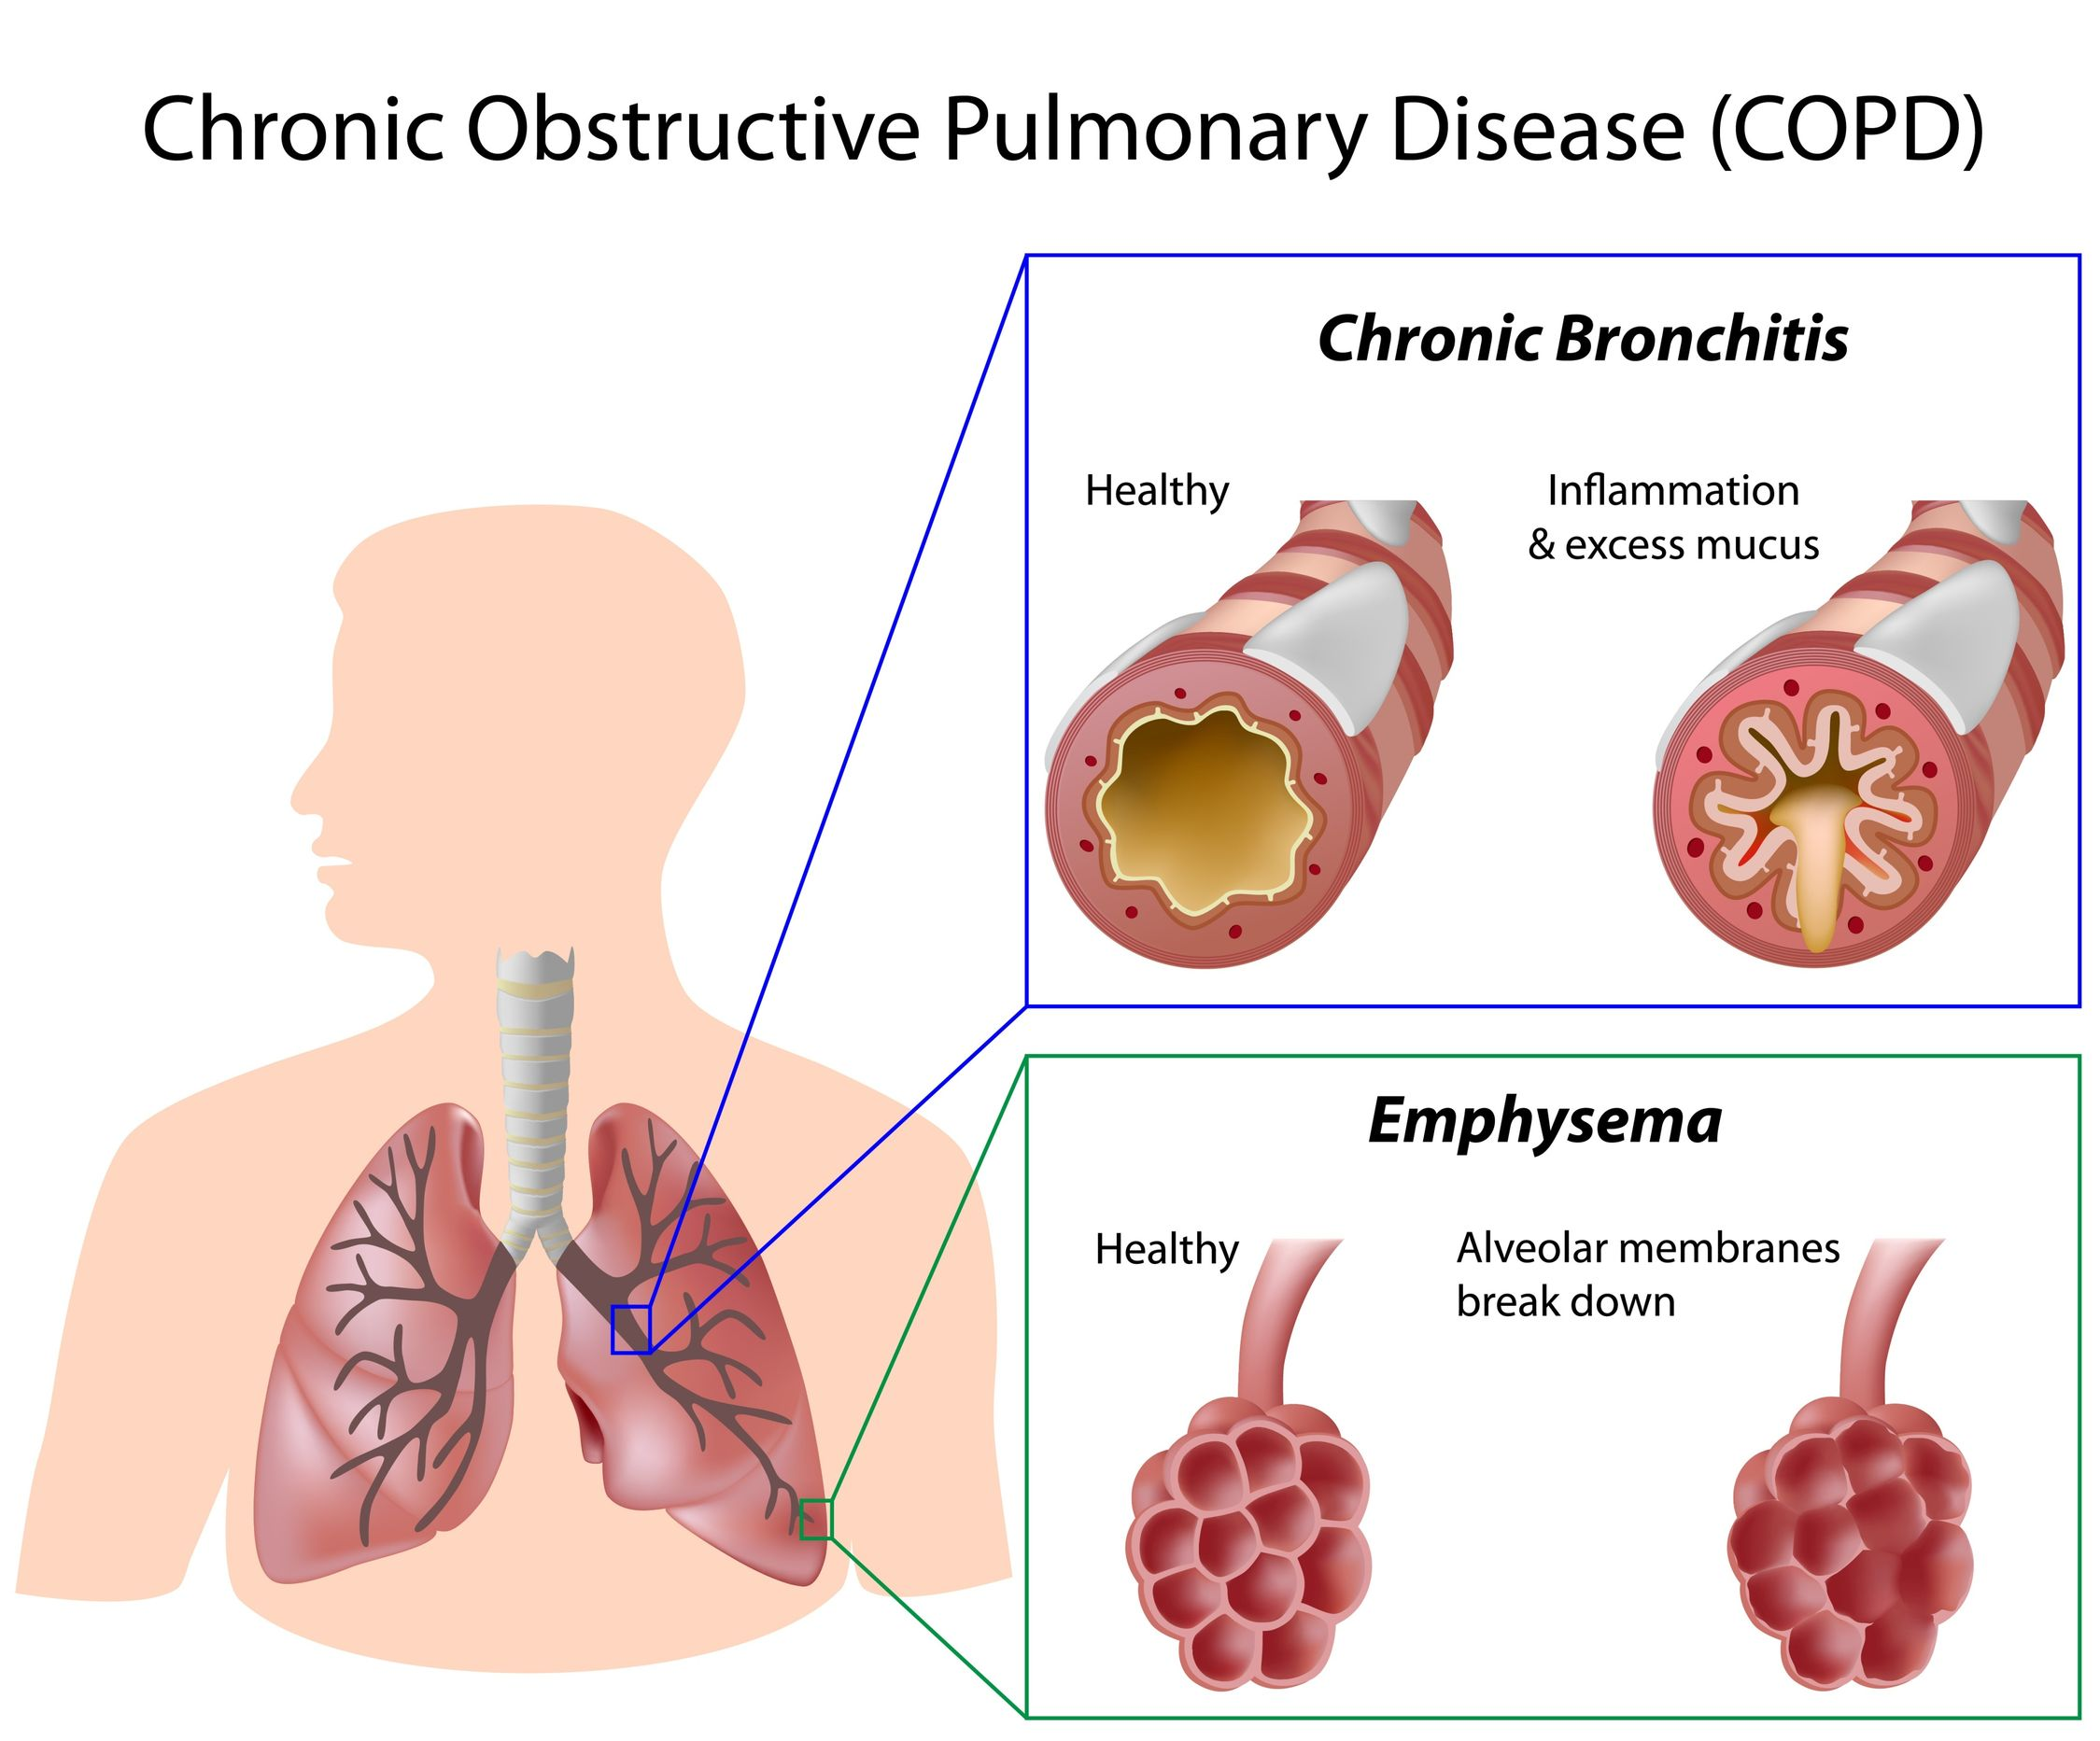 copd stem cell, copd treatment, copd stem cell treatment, stem cell therapy, copd, stem cell treatment,